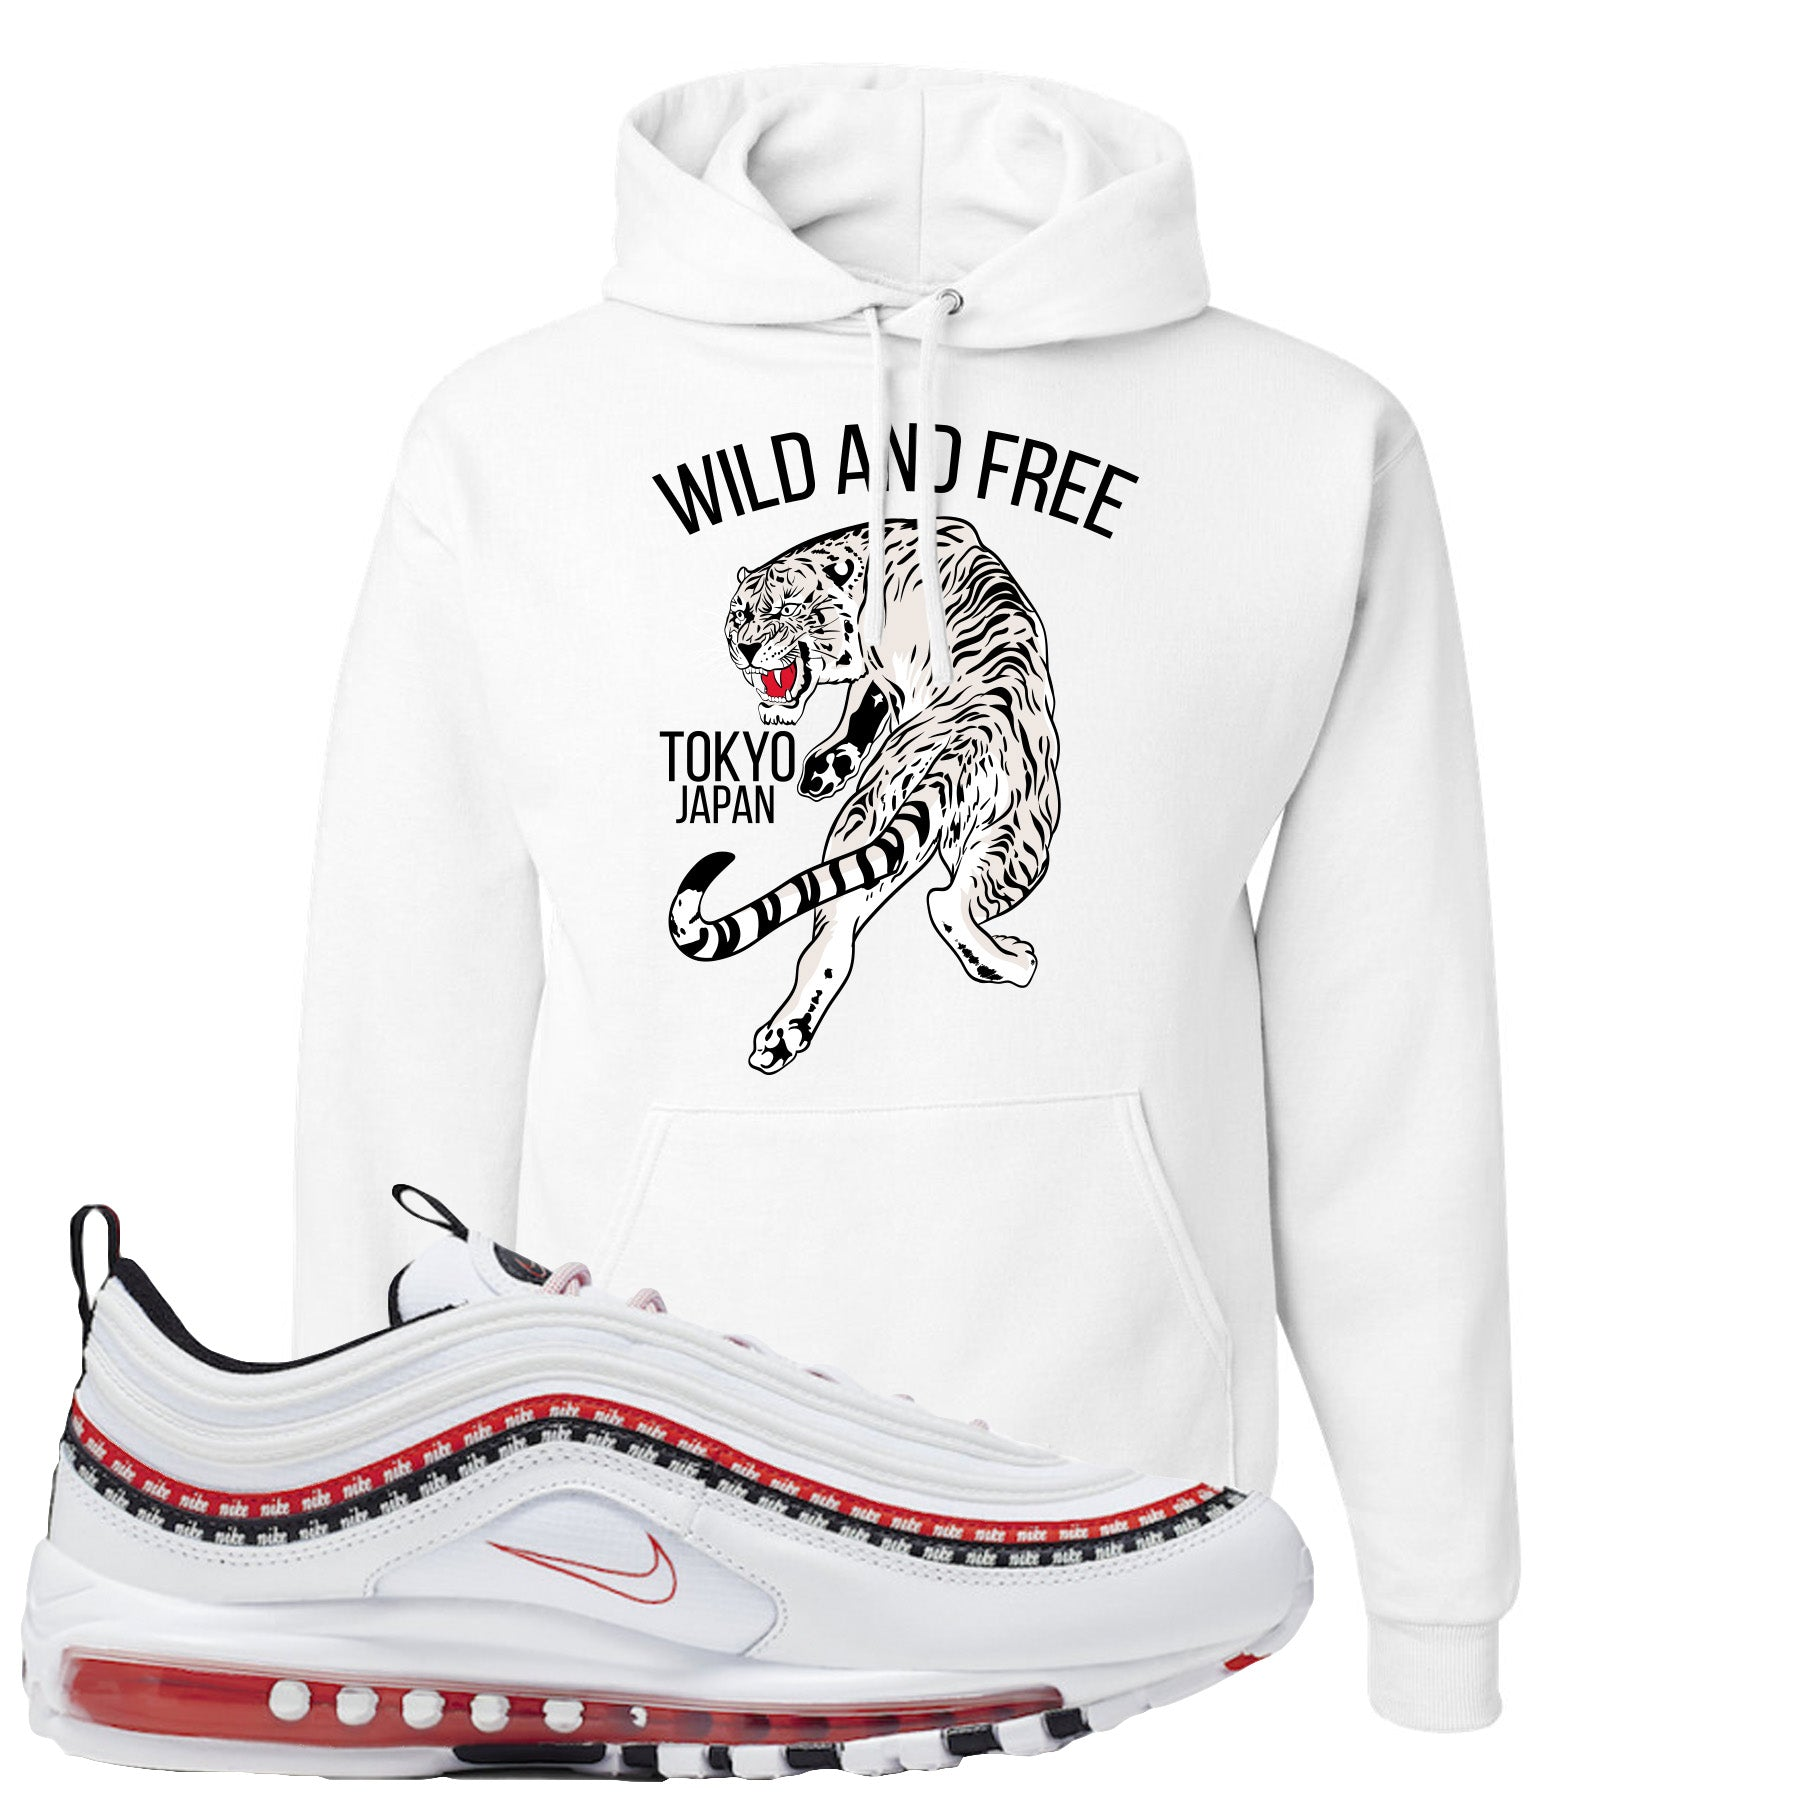 Nike Air Max 97 White University Red Sneaker Hook Up Tiger White